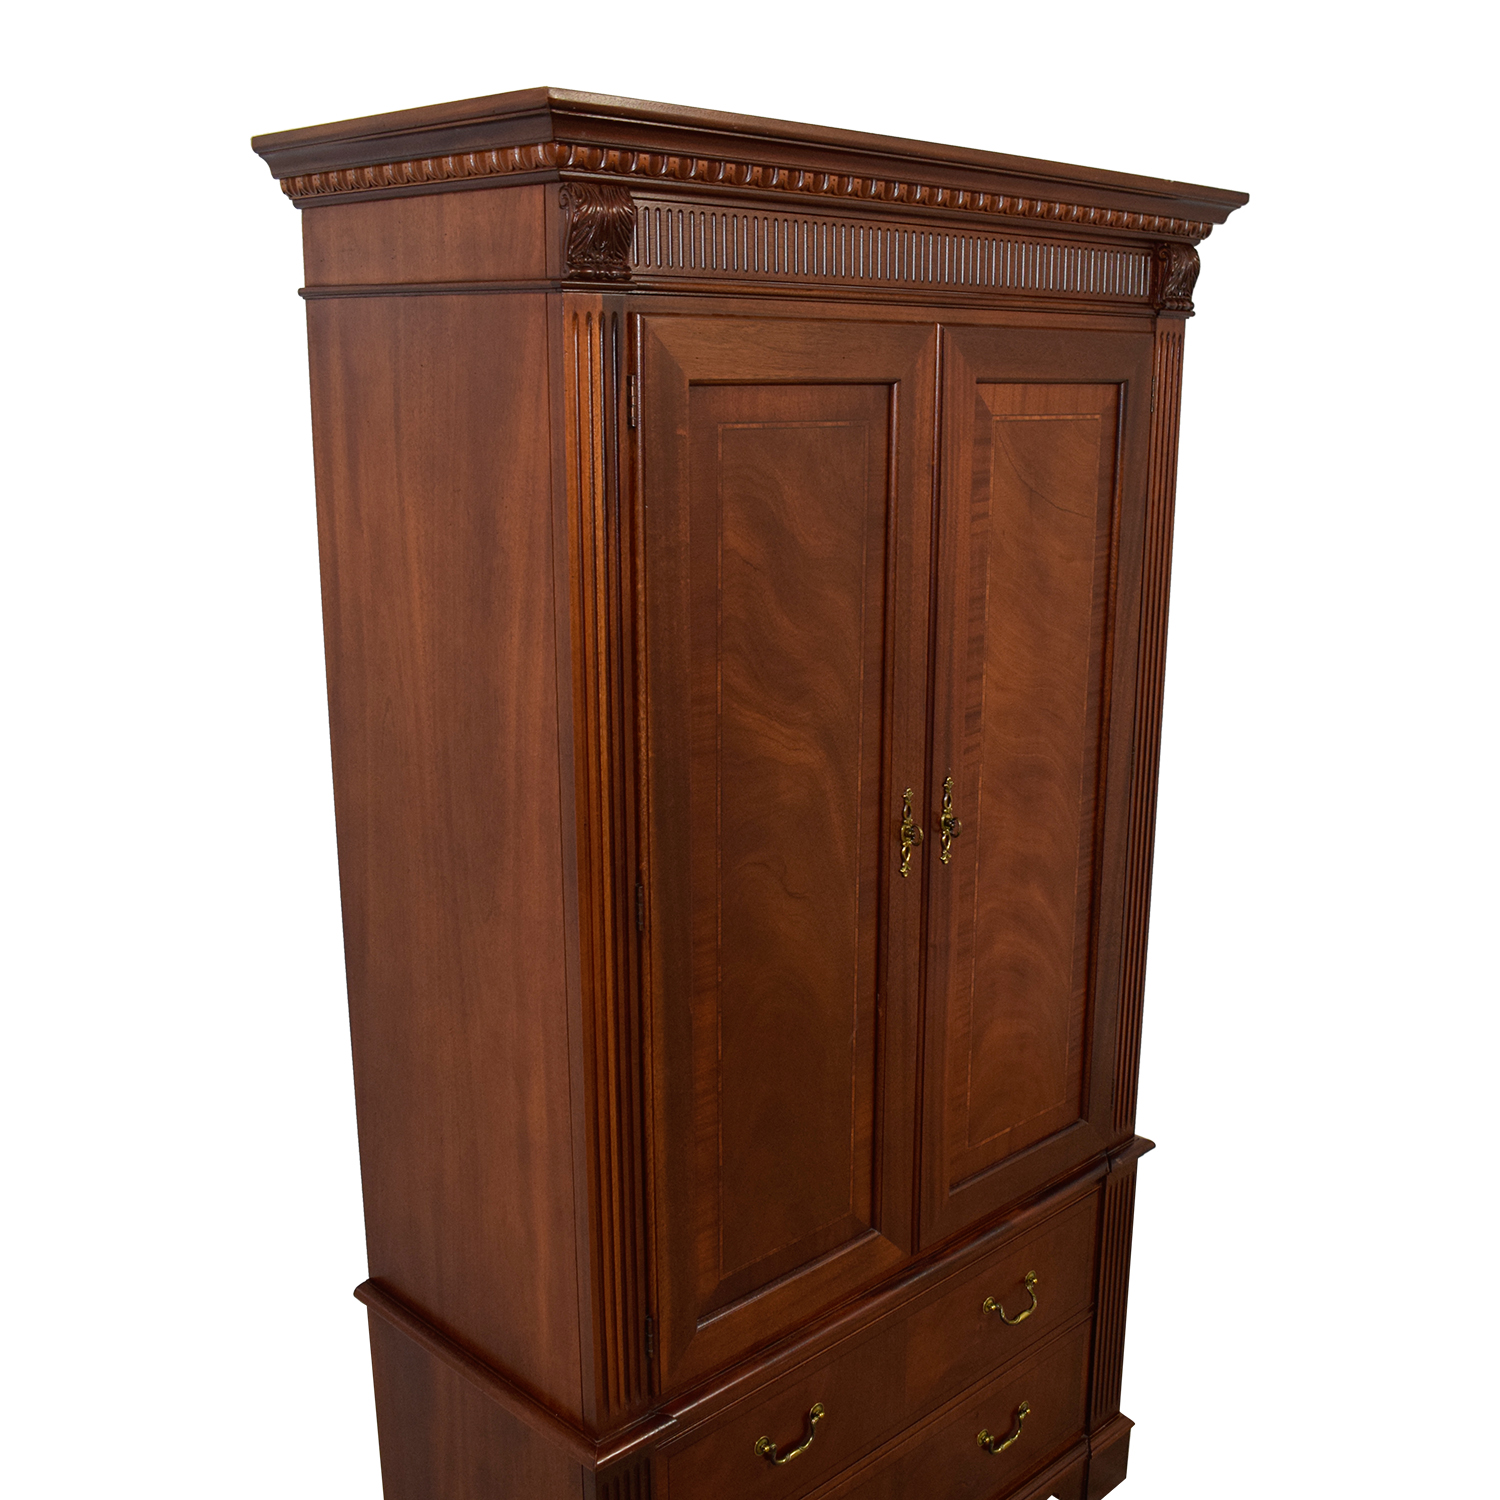 Ethan Allen Ethan Allen Wood TV Armoire with Shelves dimensions